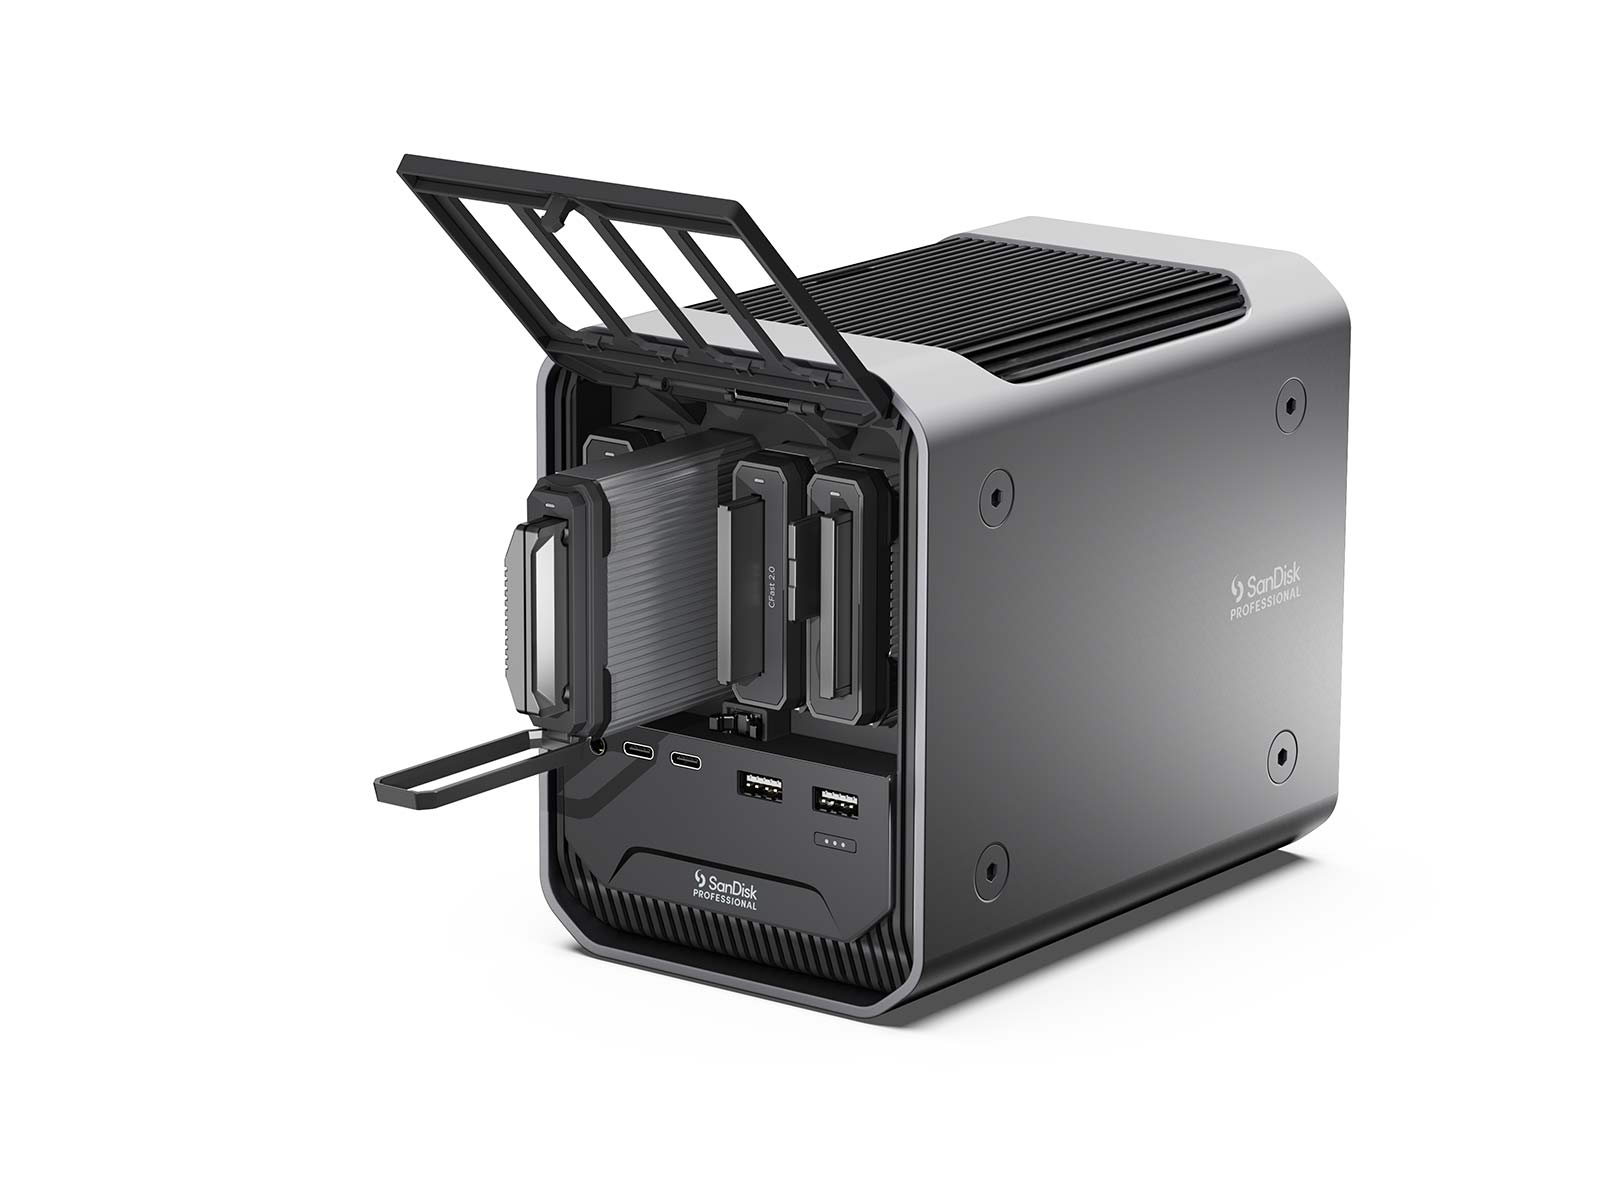 The new SanDisk Professional PRO-DOCK 4.